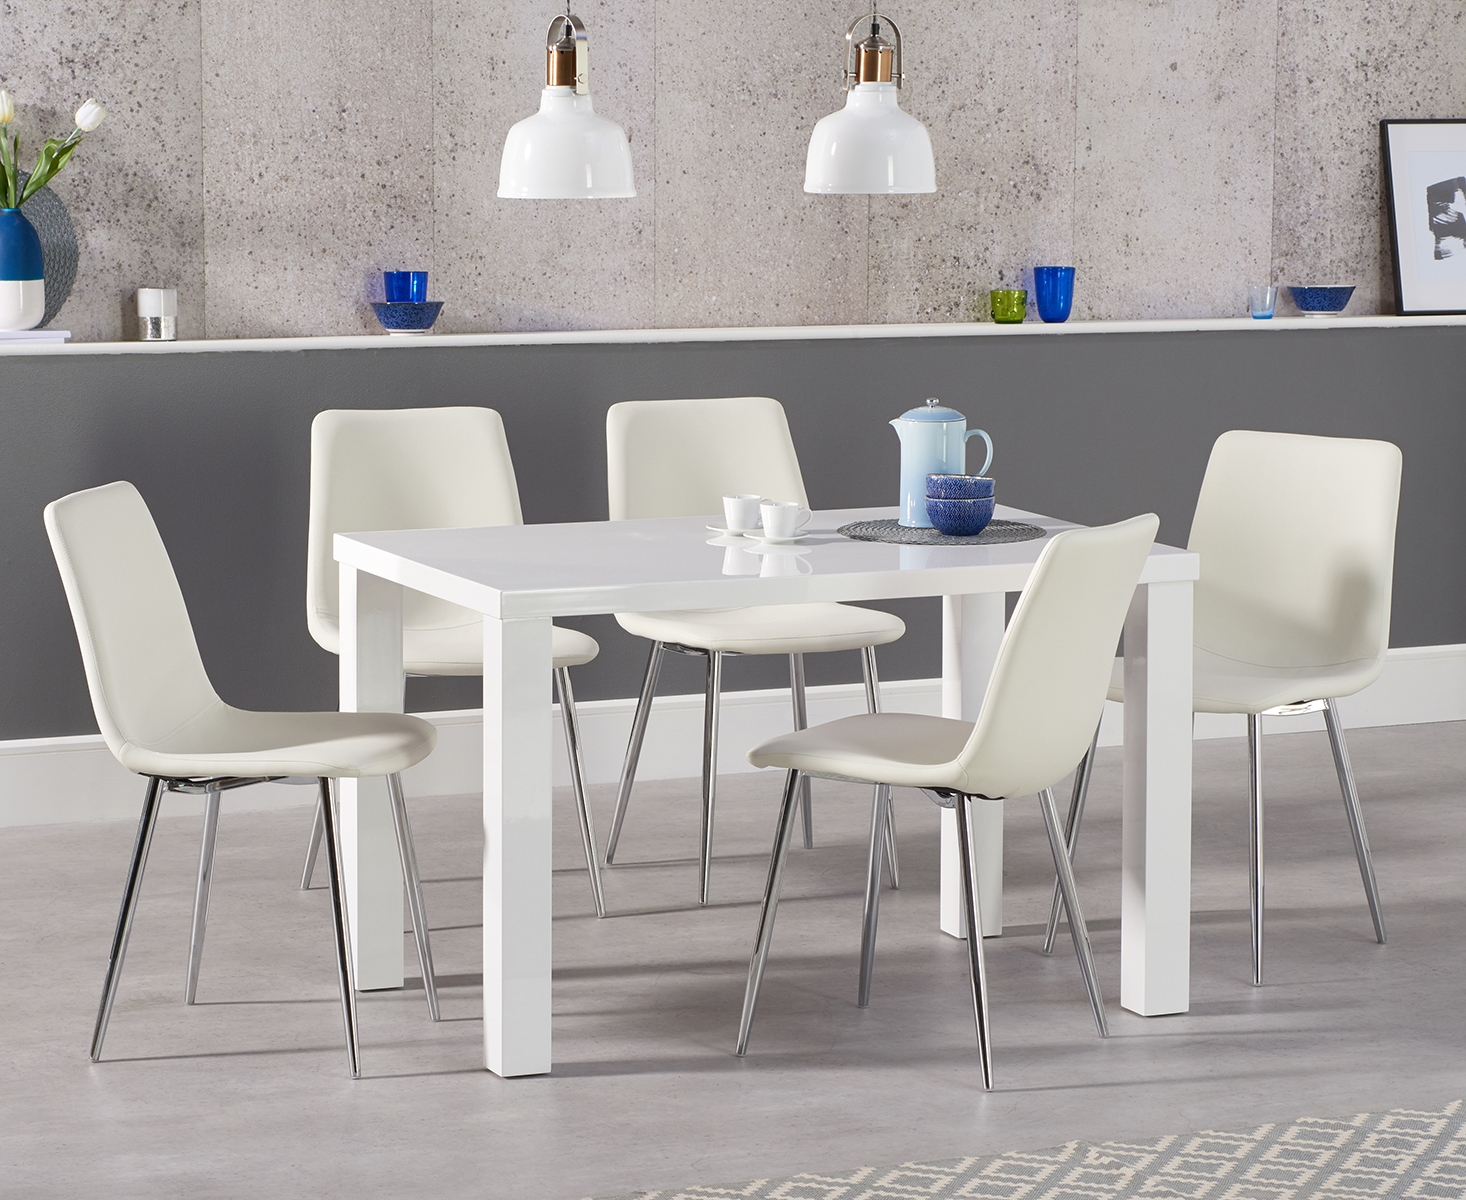 An image of Atlanta 120cm White High Gloss Dining Table with Helsinki Faux Leather Chairs